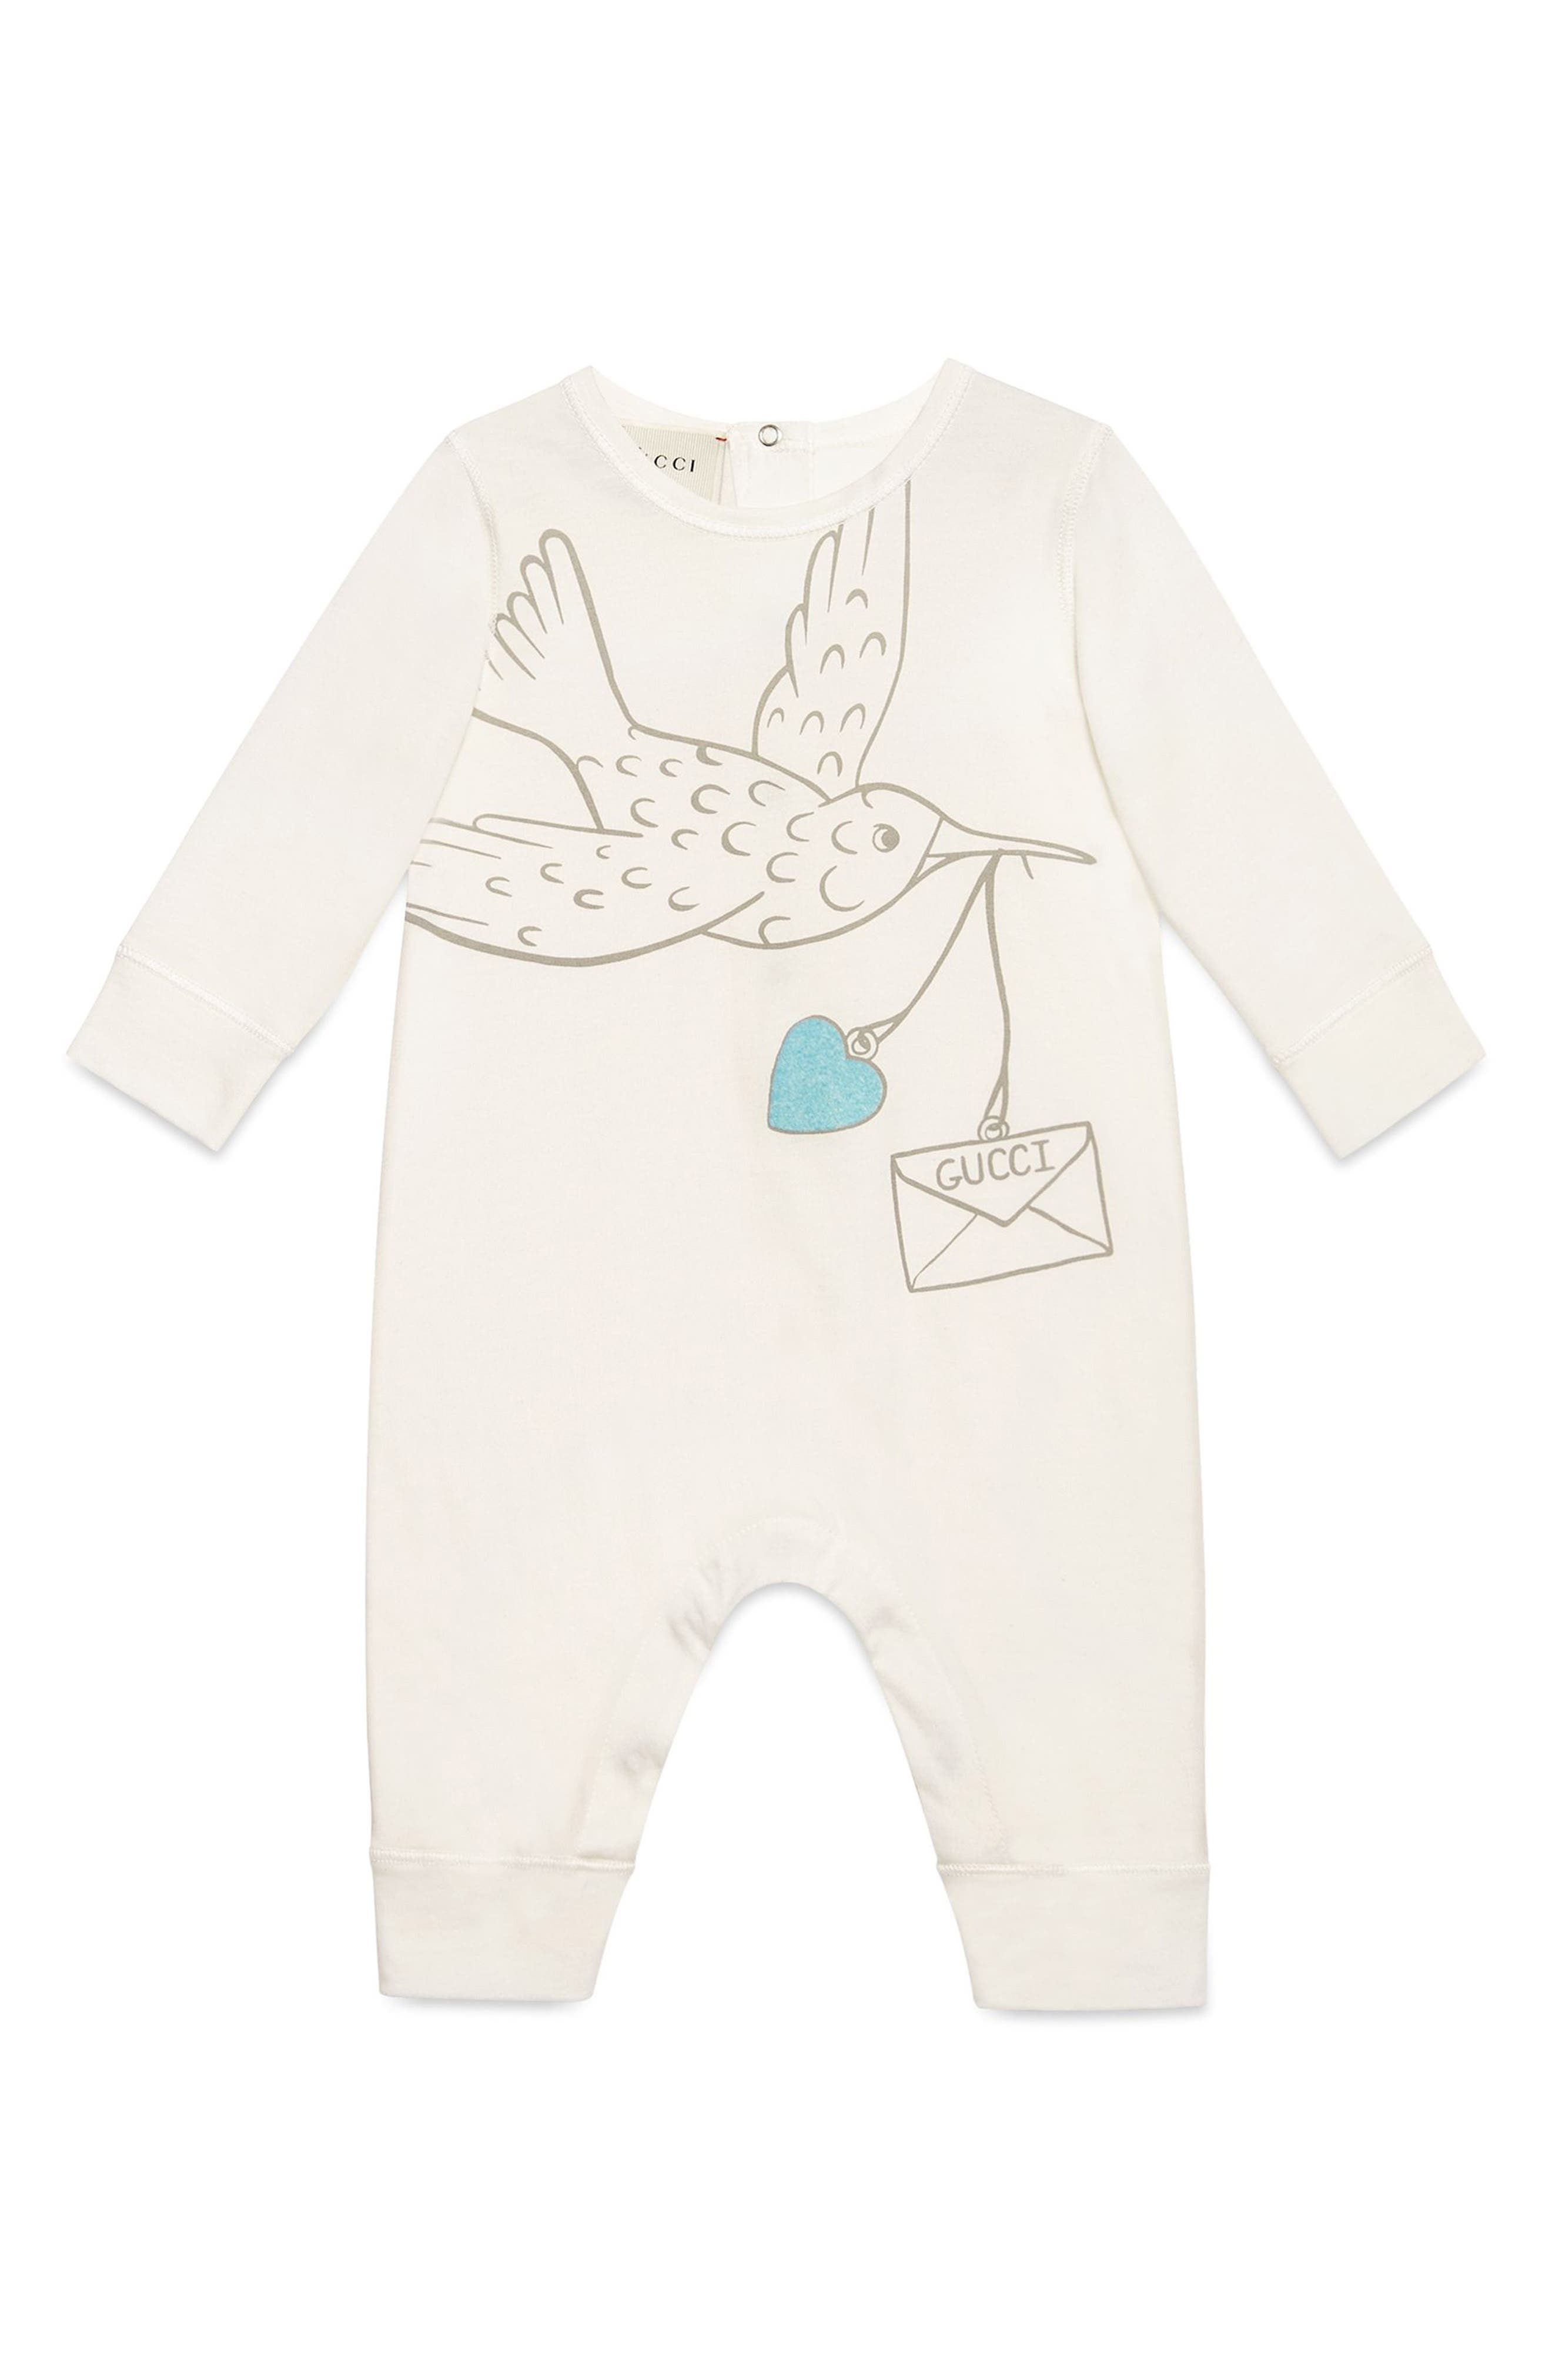 Alternate Image 1 Selected - Gucci Dove Graphic Cotton Romper (Baby Girls)